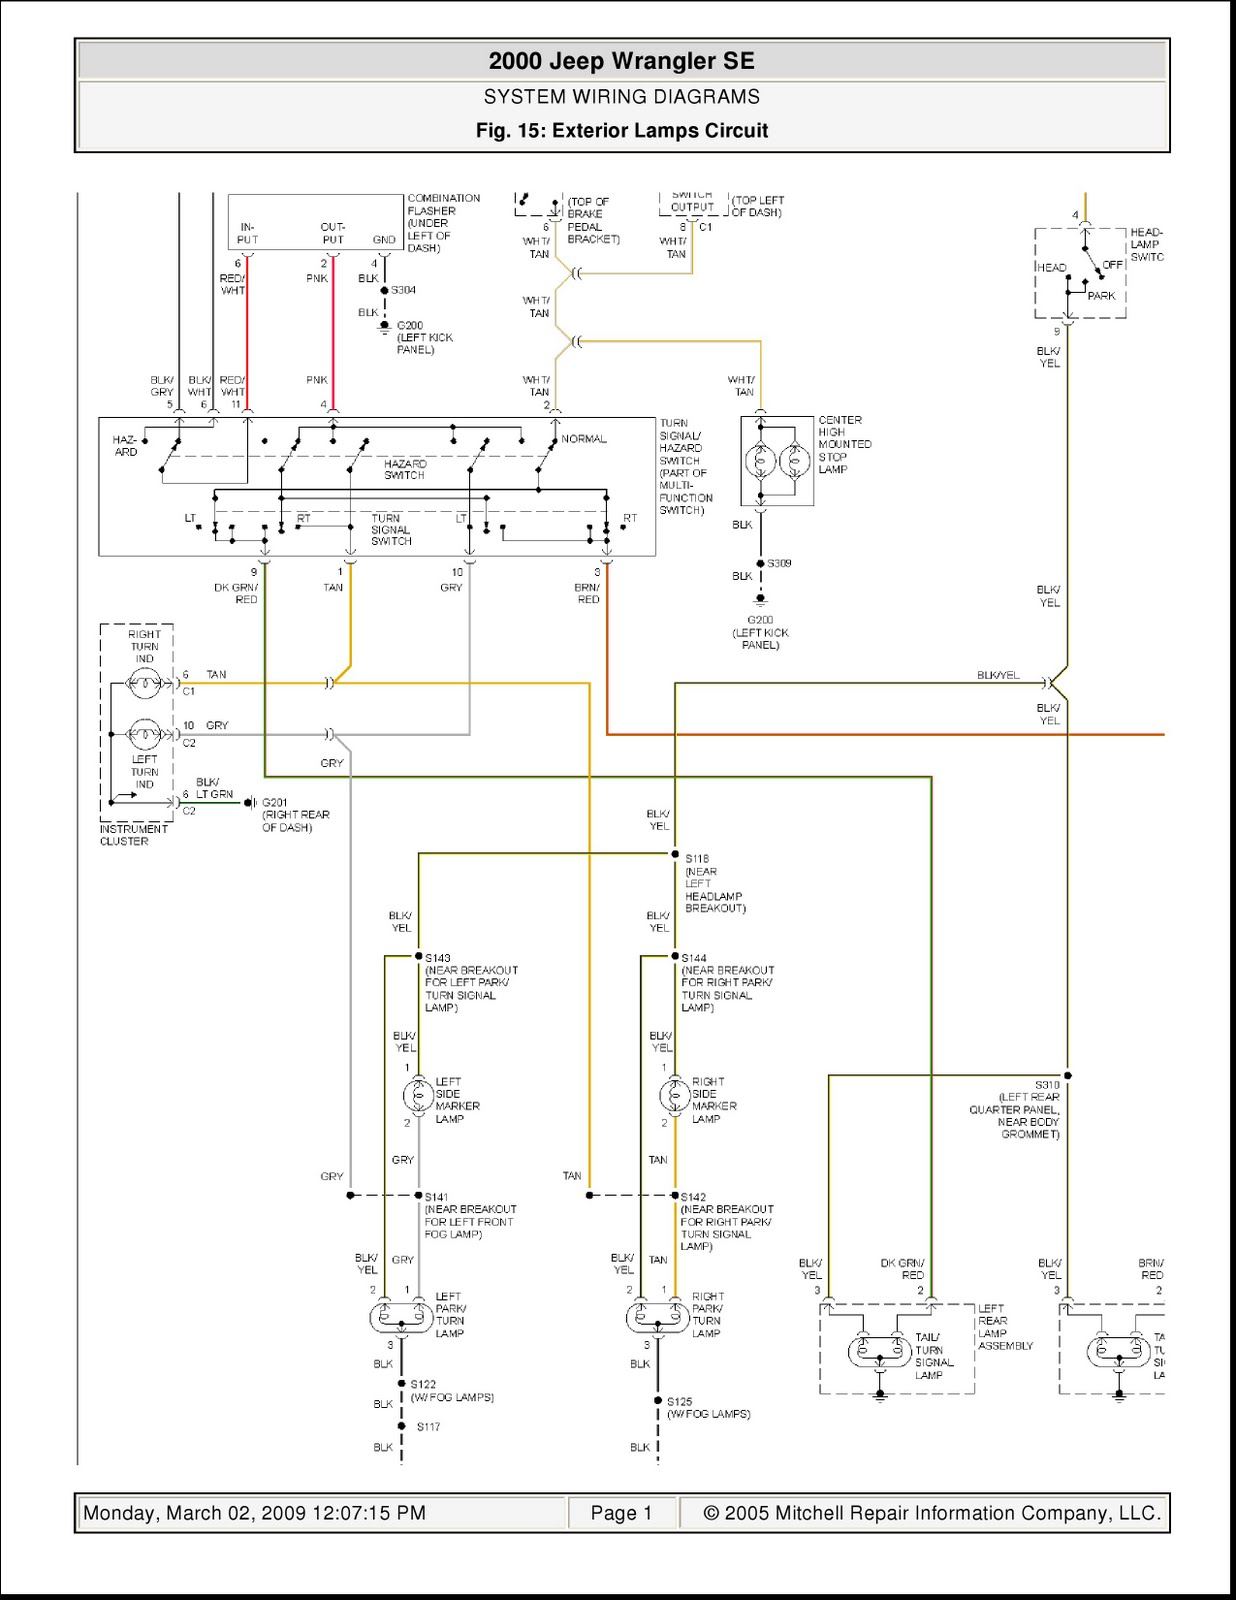 DIAGRAM] 1987 Jeep Wrangler Wiring Harness Diagram FULL Version HD Quality  Harness Diagram - LAWDIAGRAMS.SKINE.FRSkine.fr